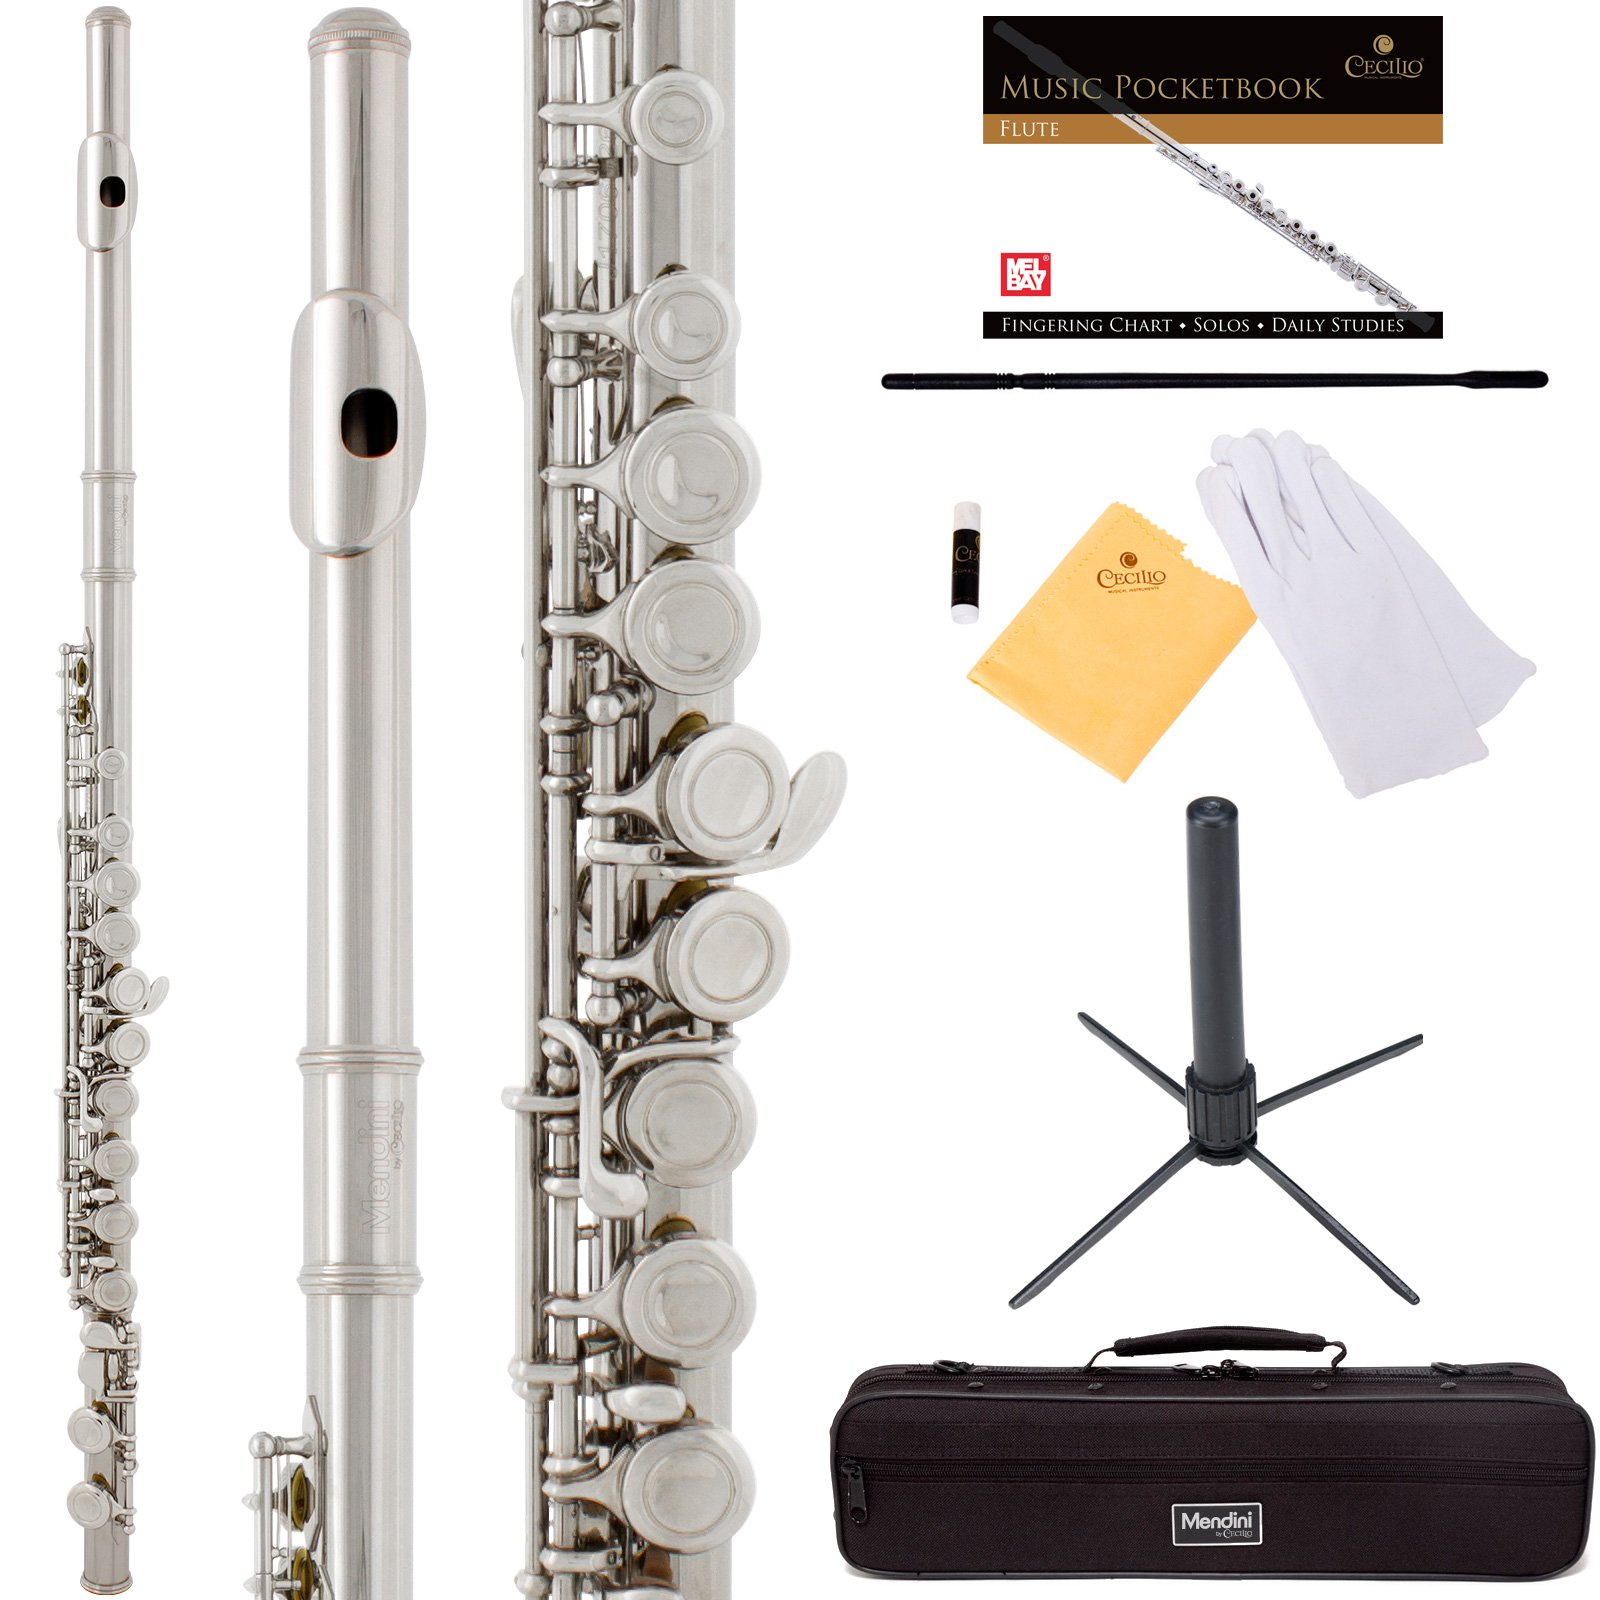 Mendini by Cecilio Premium Grade Closed Hole C Flute with Stand, Book, Deluxe Case and Warranty (Nickel Plated) by Mendini by Cecilio